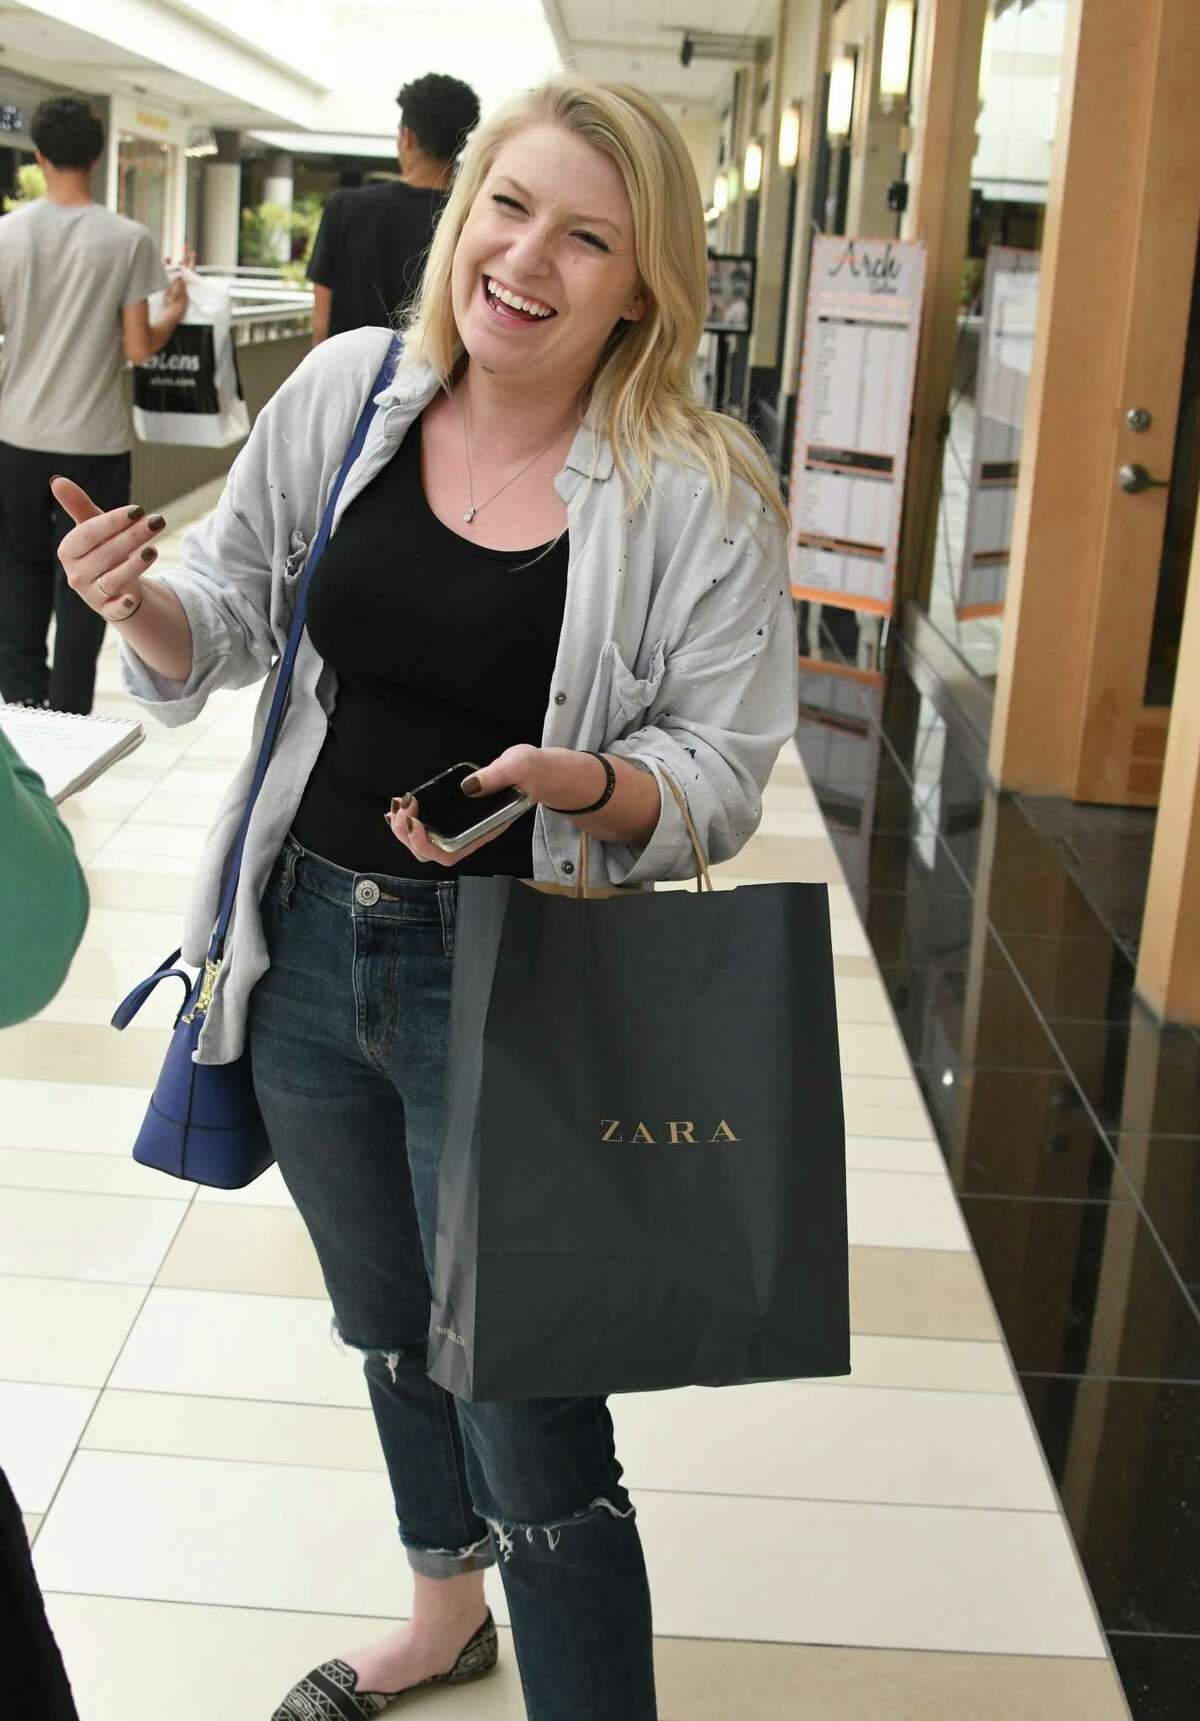 Taylor Matthews of Scotia talks about what she bought at Zara on opening day at Crossgates Mall on Thursday, Sept. 21, 2017 in Albany, N.Y. Zara is a two-level European fashion store. (Lori Van Buren / Times Union)